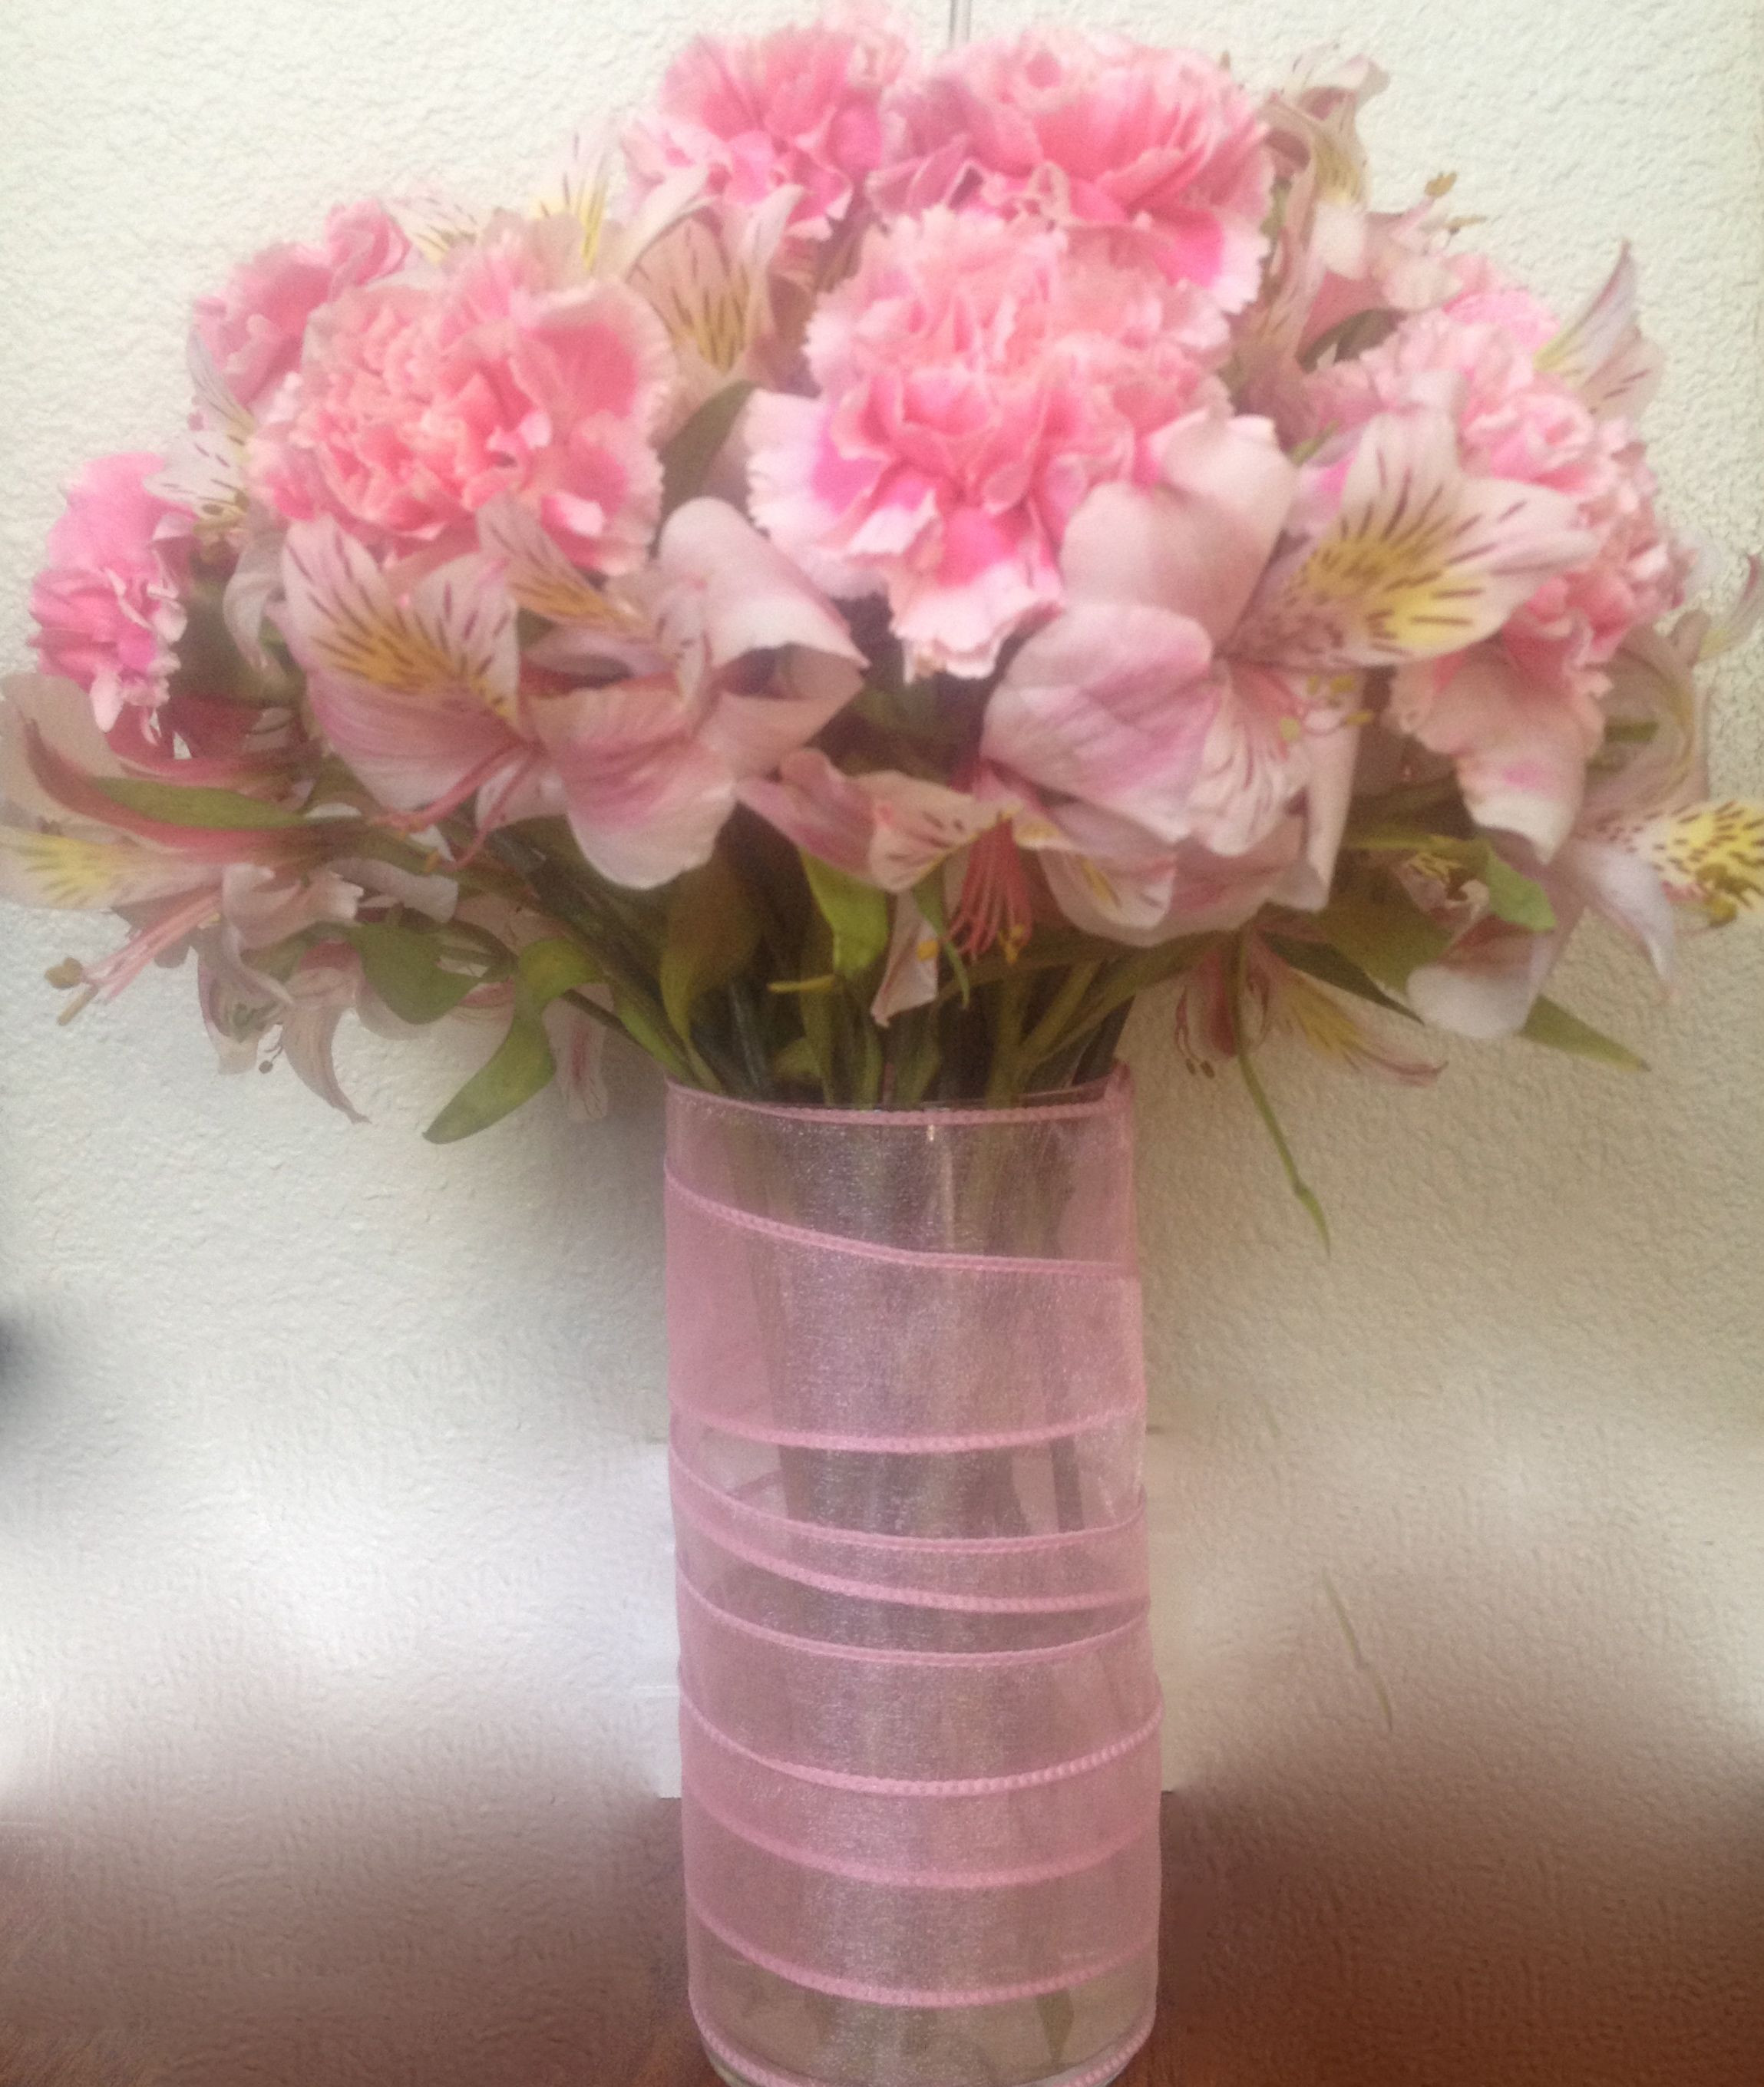 clear round glass vases wholesale of its a girl pink carnations alstroemeria in a glass vase wrapped pertaining to pink carnations alstroemeria in a glass vase wrapped in pink ribbon